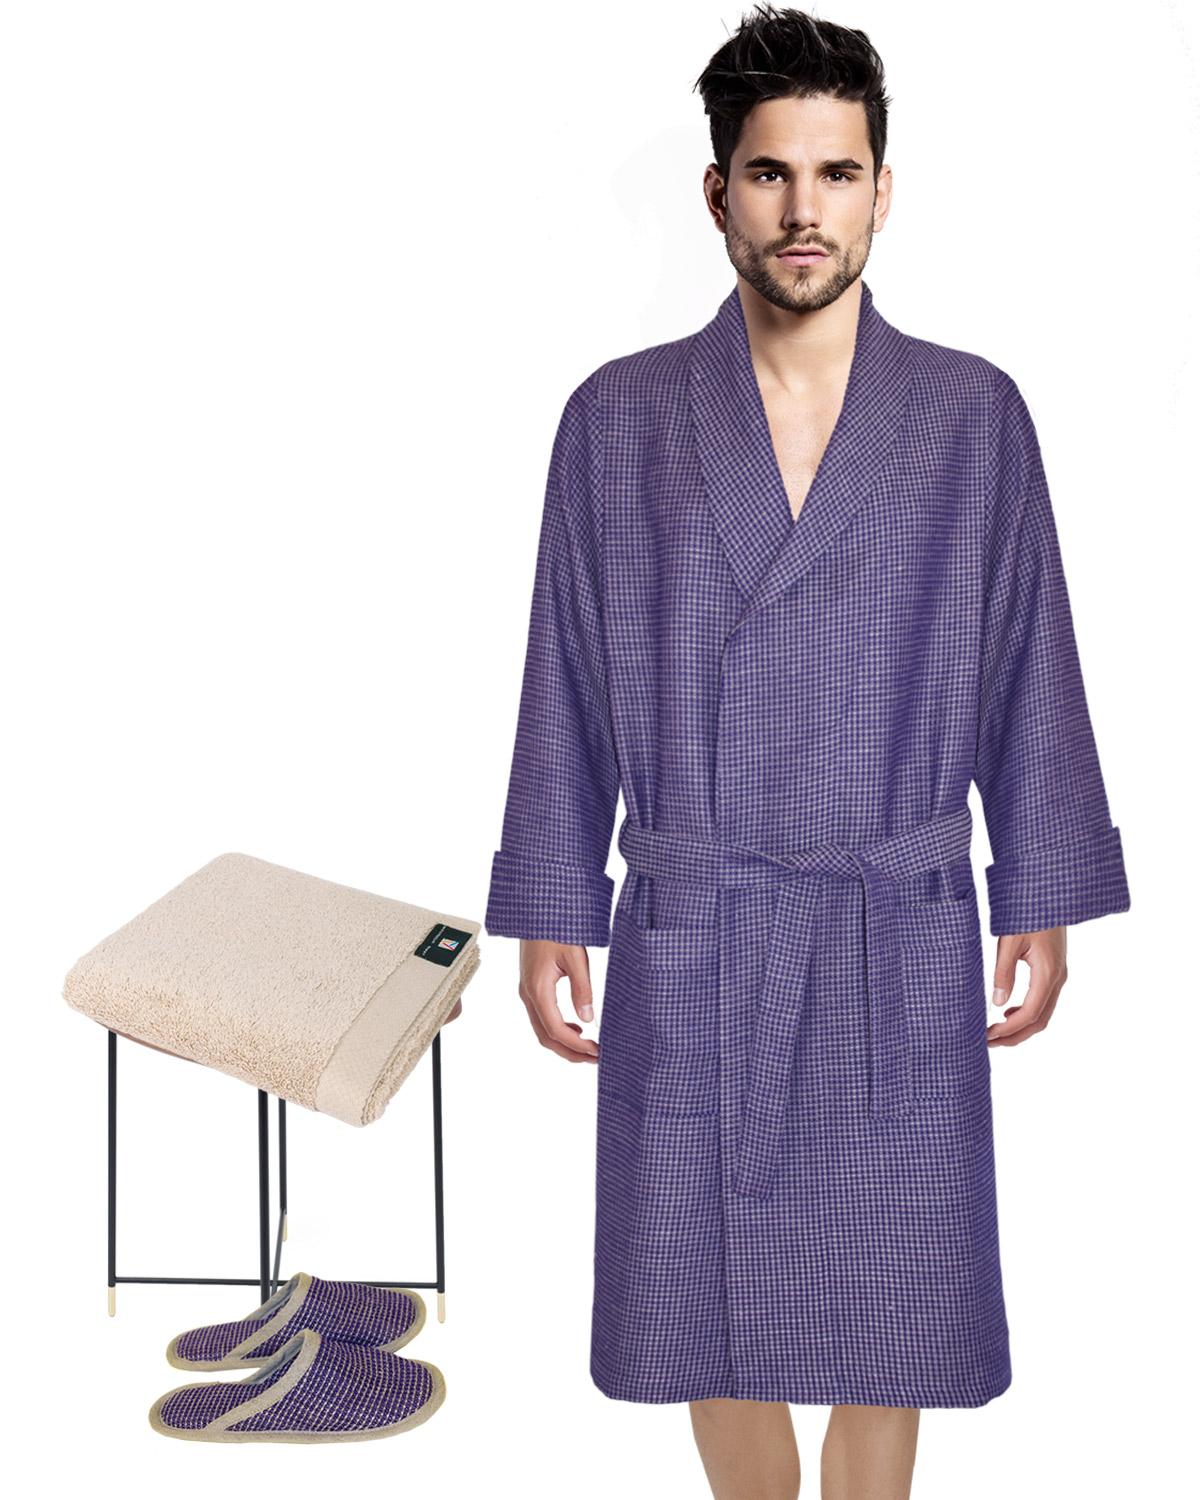 Waffle Robe + Slippers + Hand Towel in Petunia/Natural, Puglia Luxury